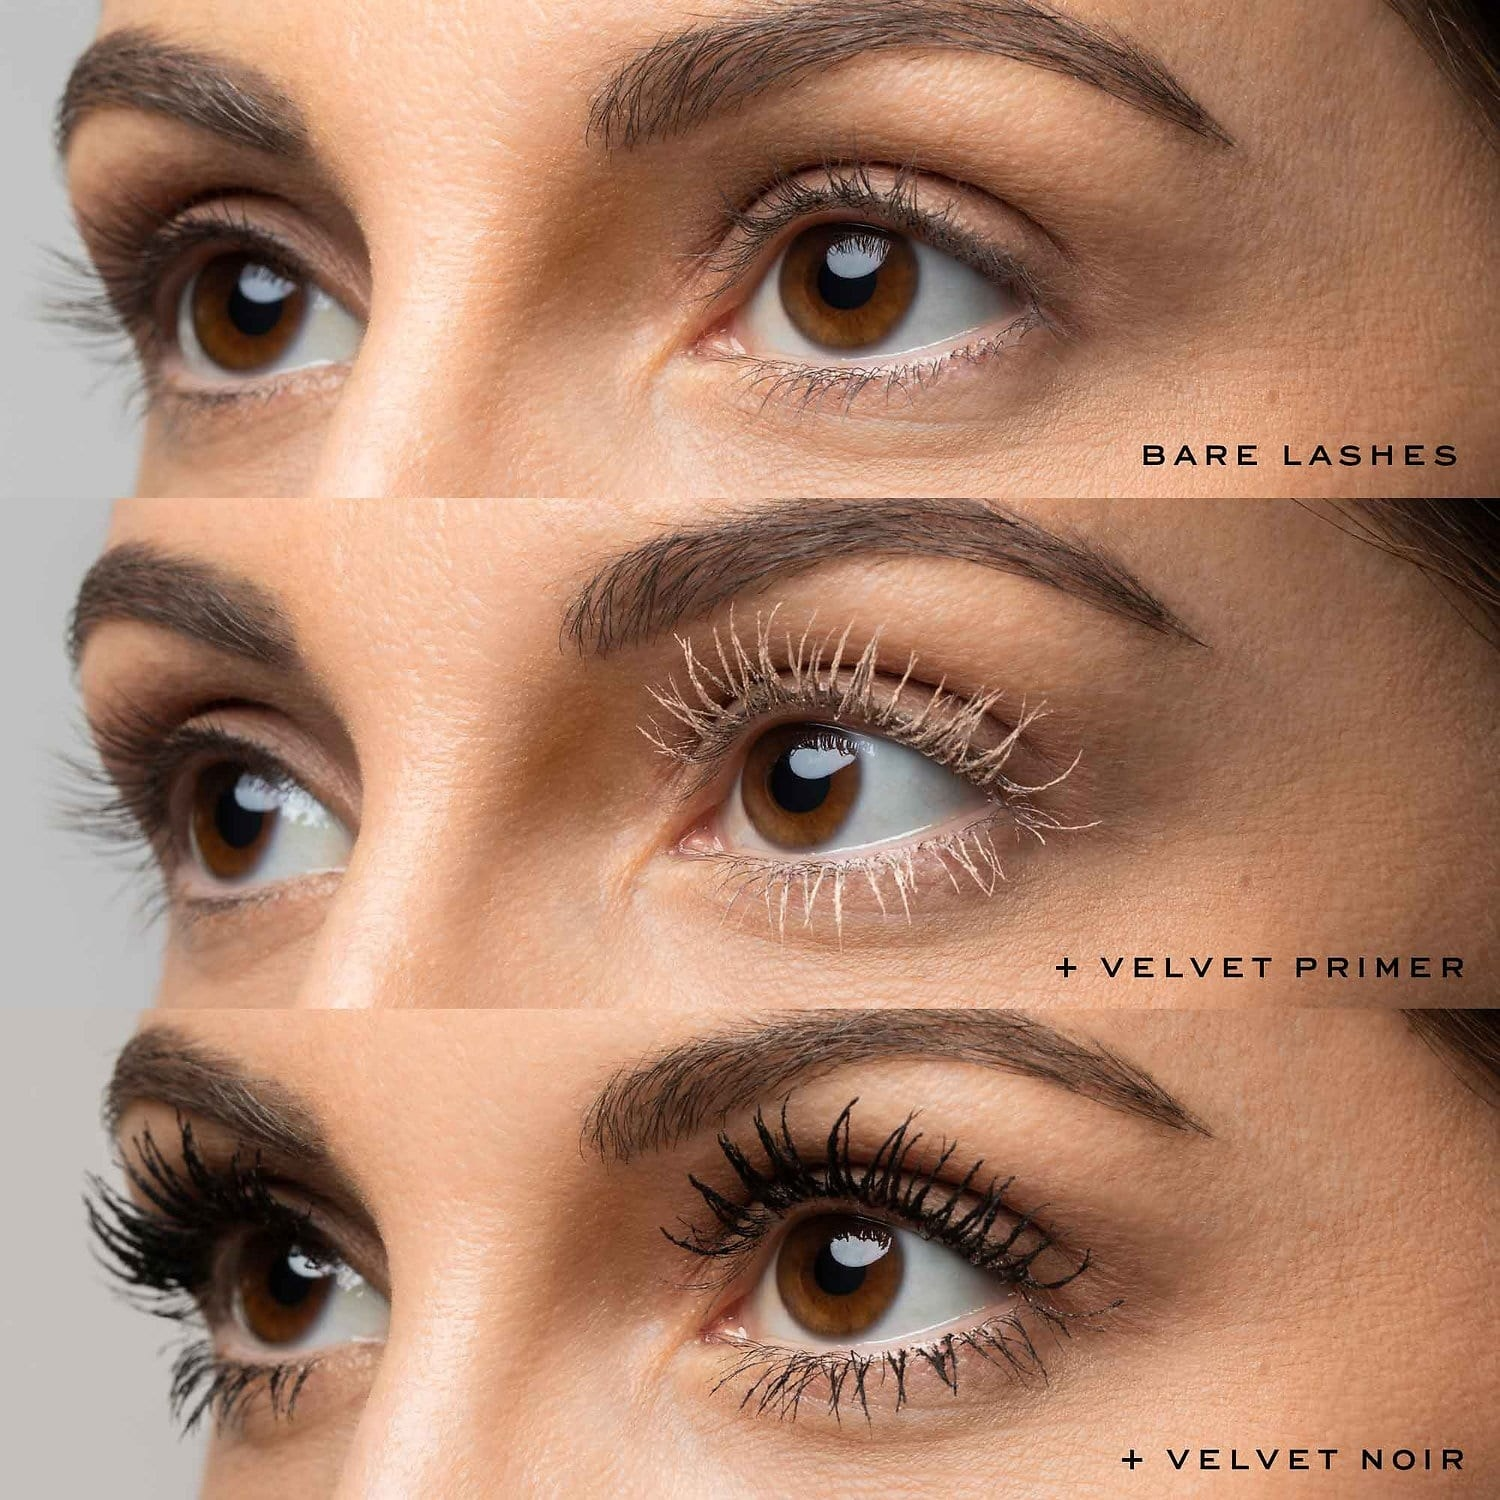 Three images of a person without mascara on their lashes, with primer on their lashes, and with mascara on their lashes